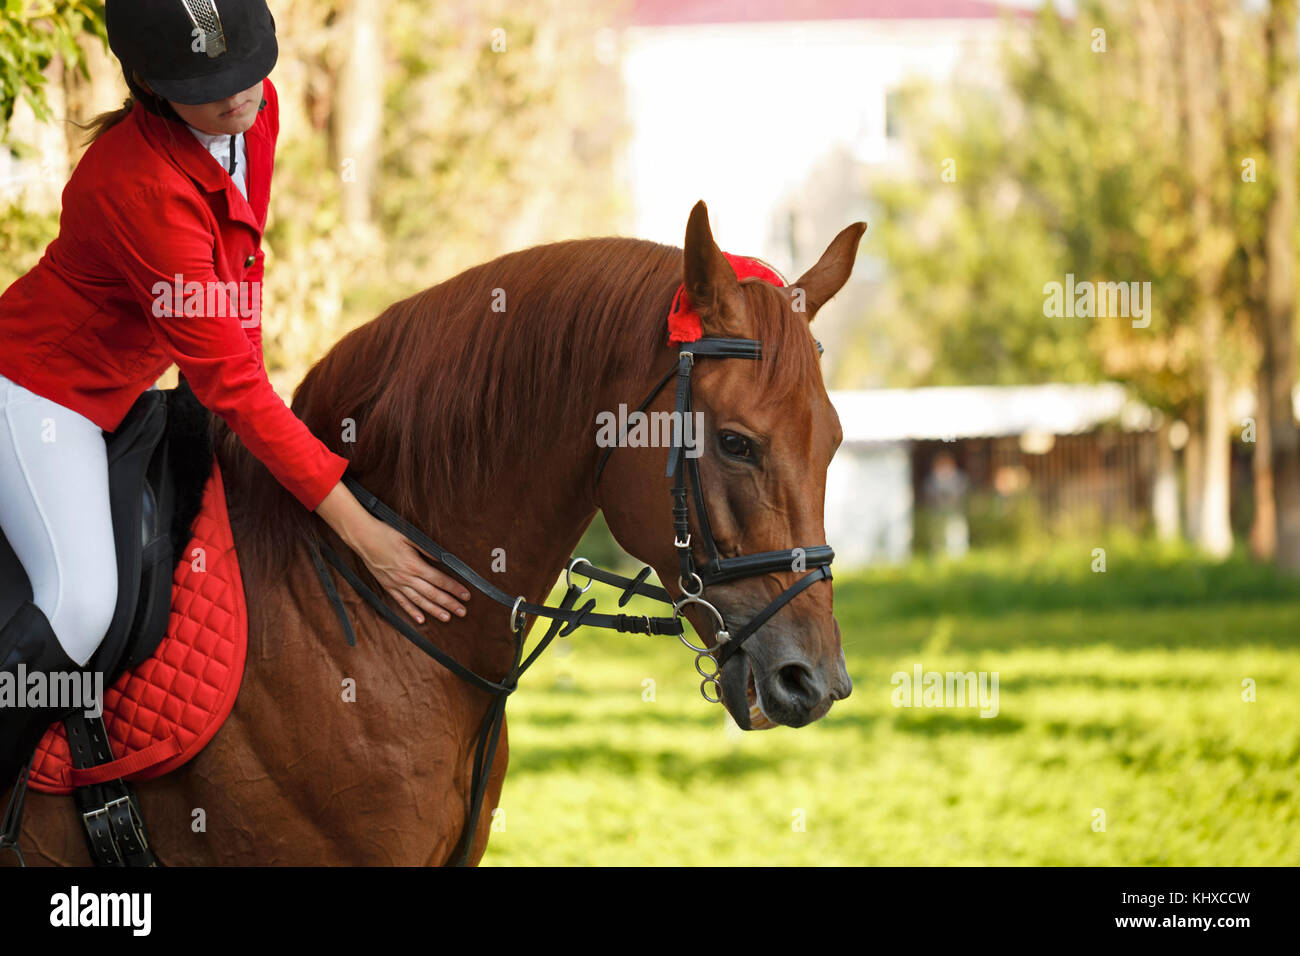 Girl jockey stroking a horse's neck outdoors. A pedigree horse for equestrian sport. - Stock Image